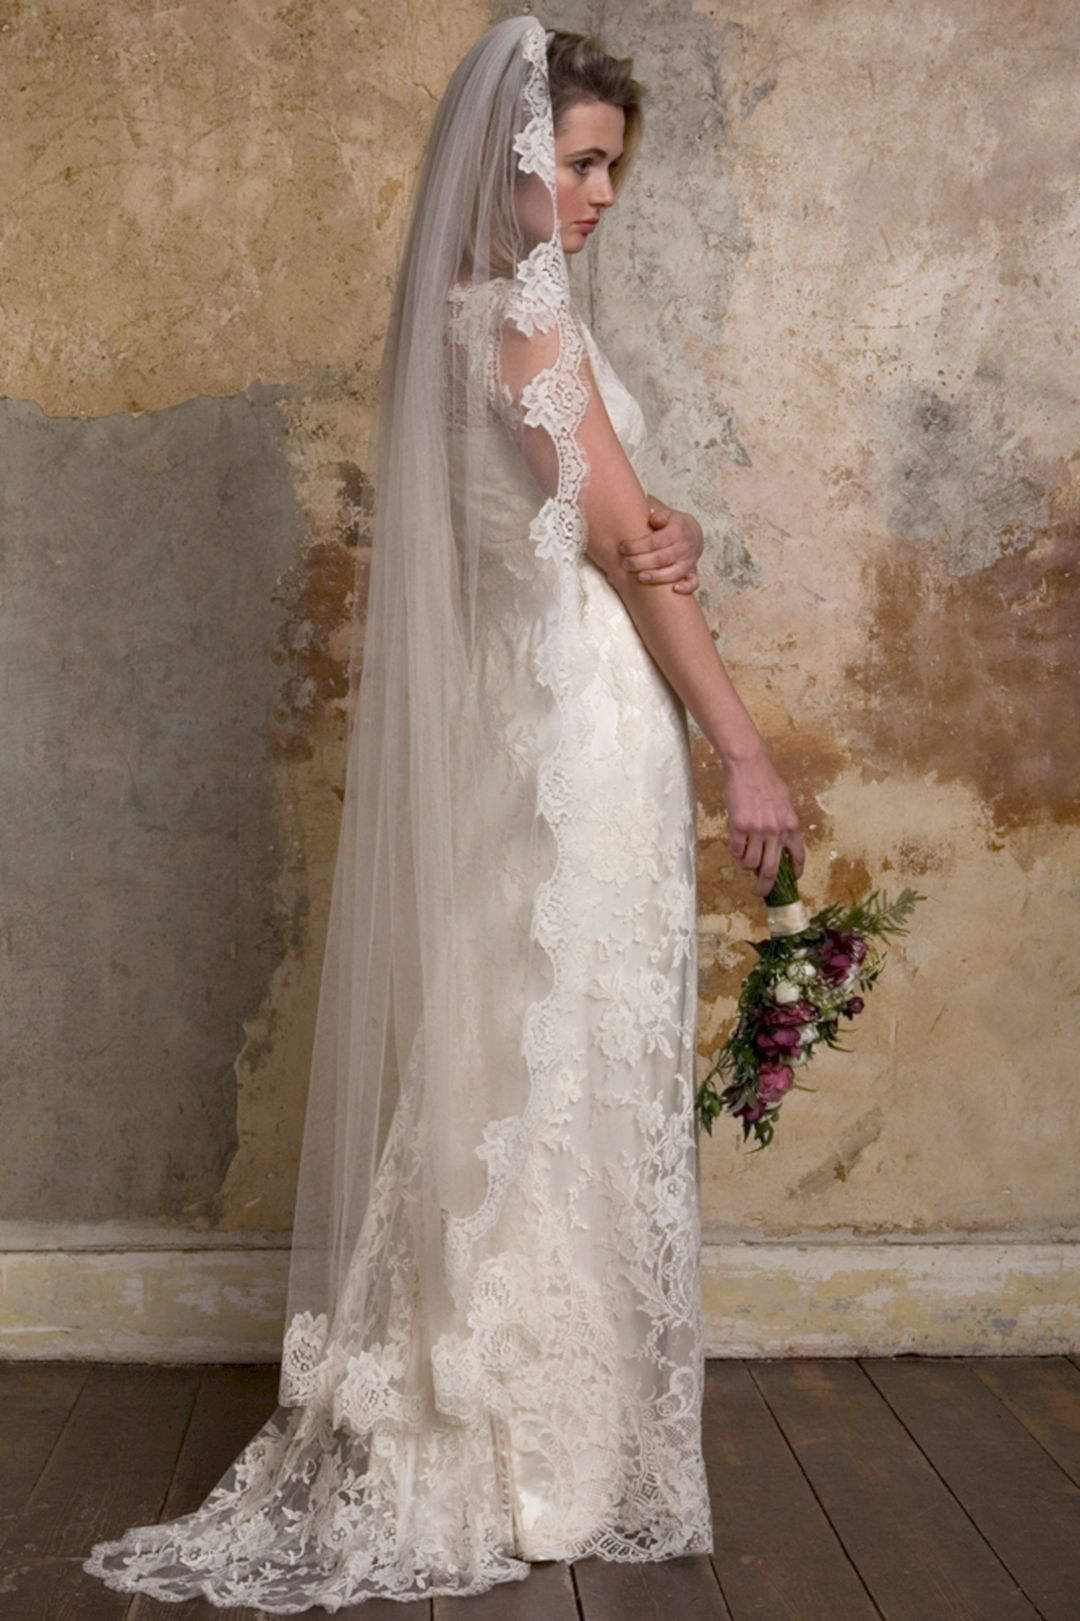 outstanding wedding veils ideas with various new styles veil